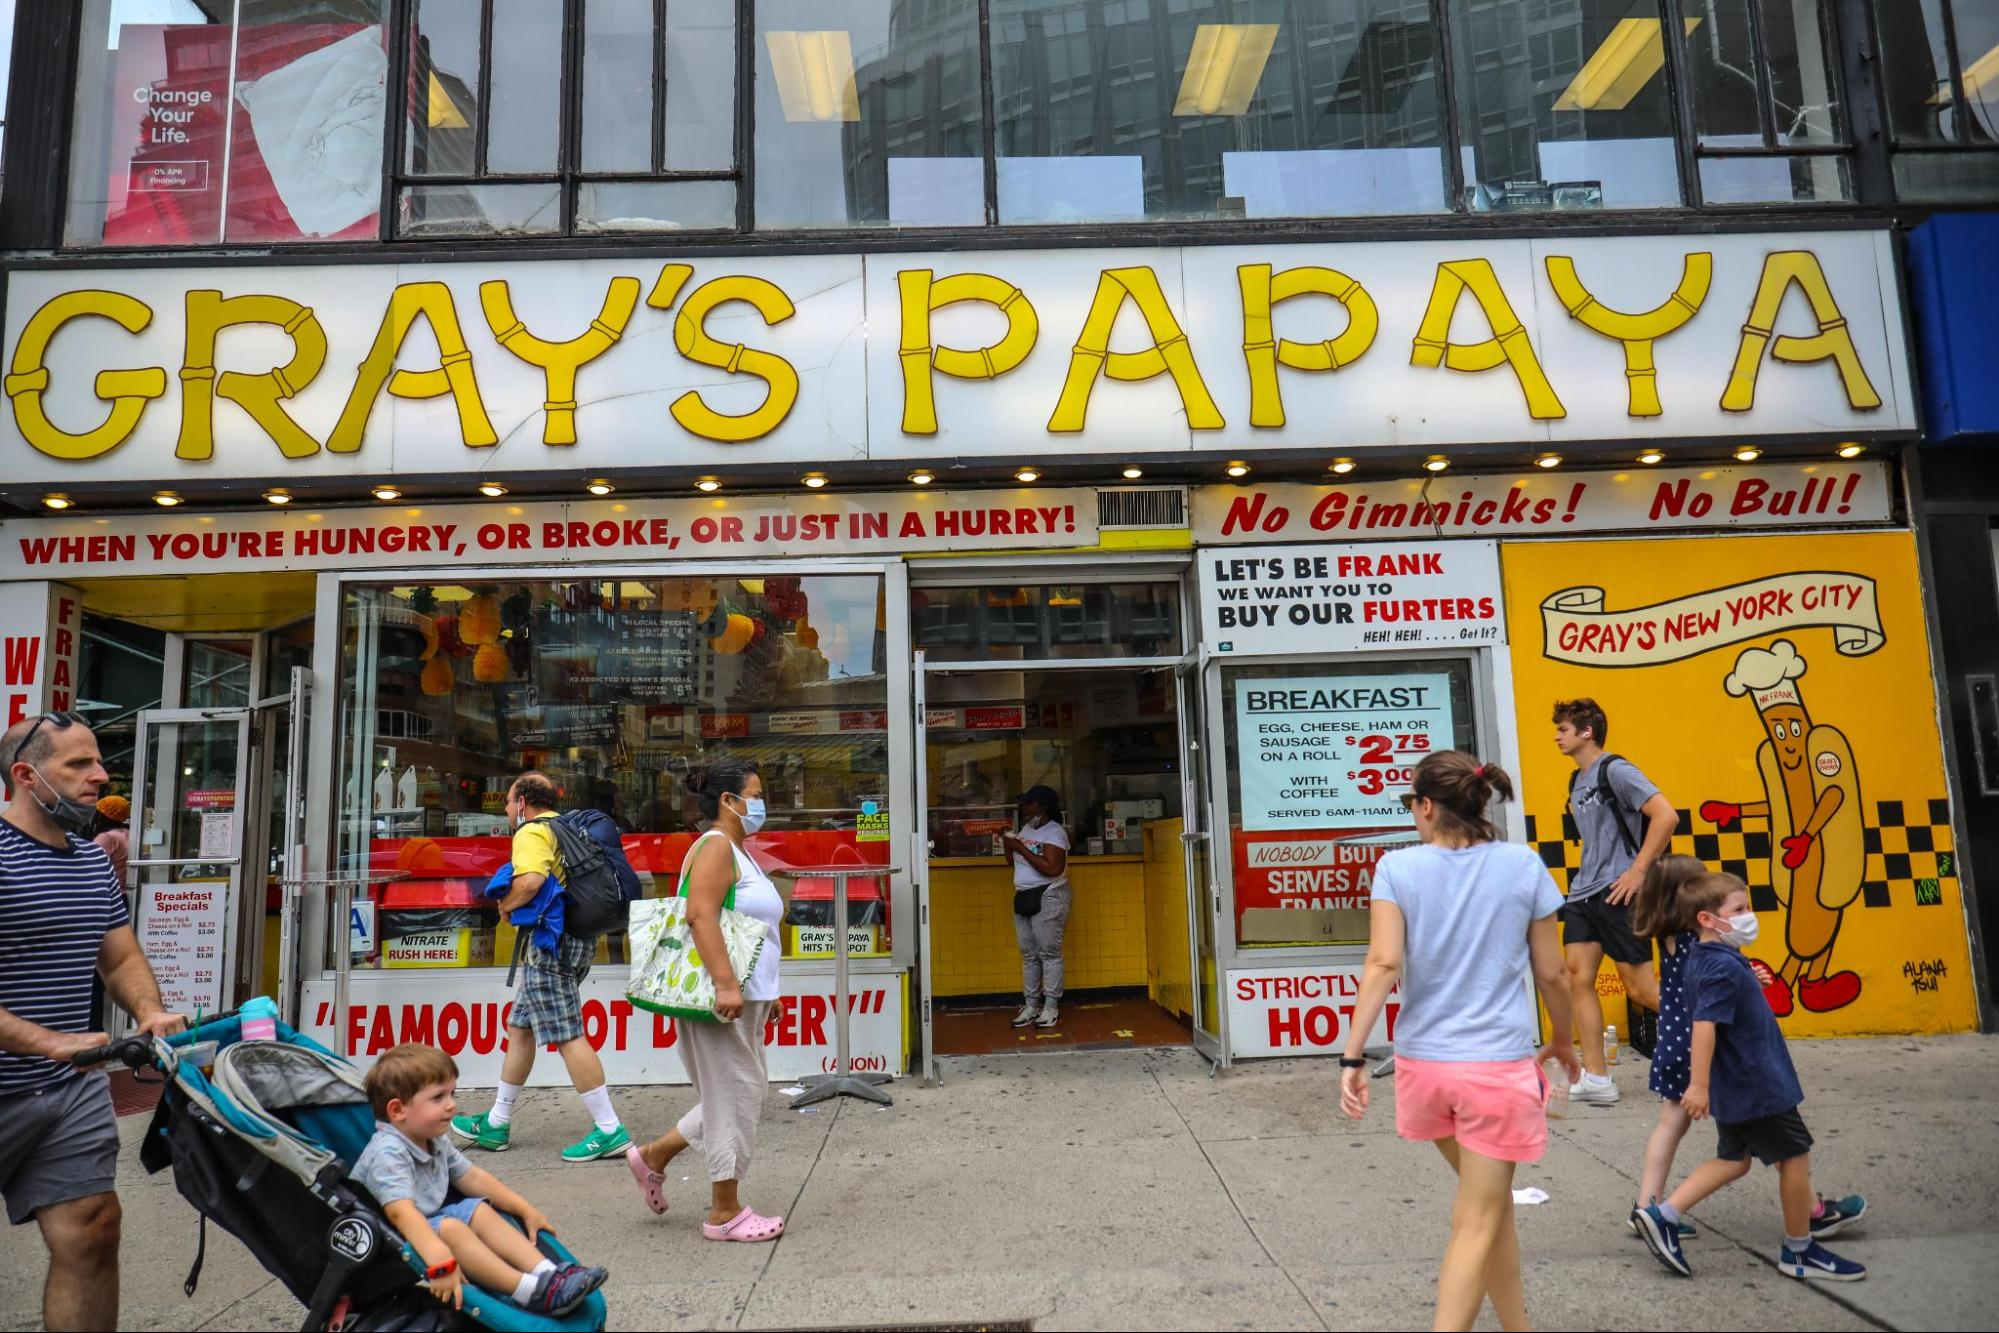 street view with pedestrians walking by gray's papaya